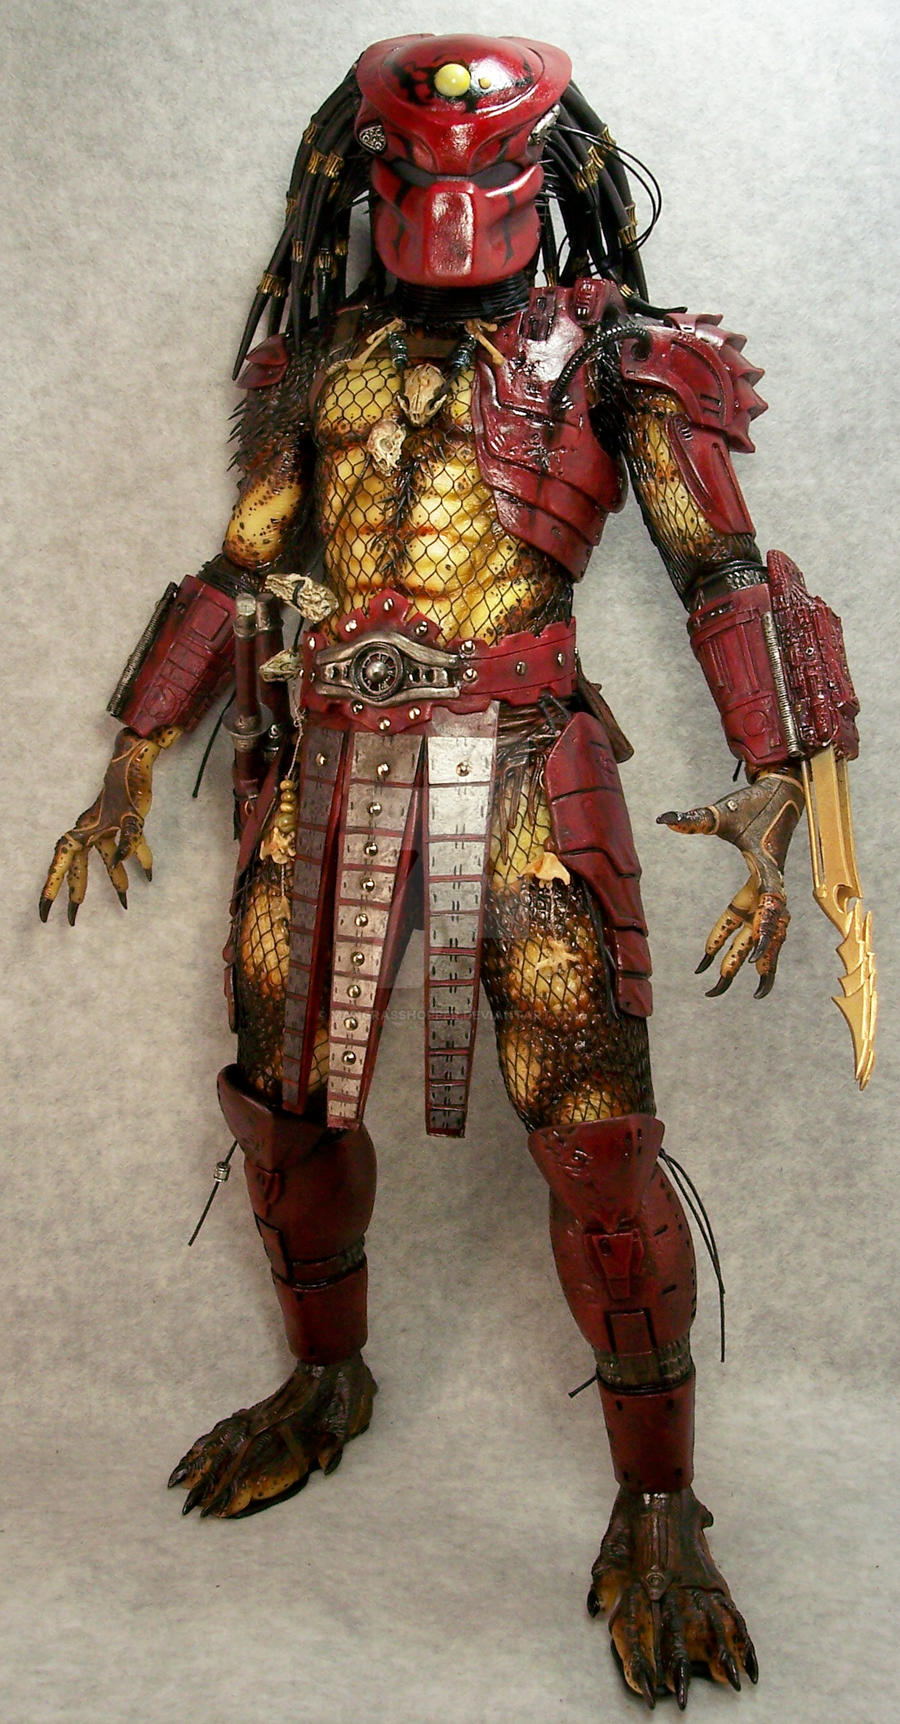 Neca Big Red by mangrasshopper